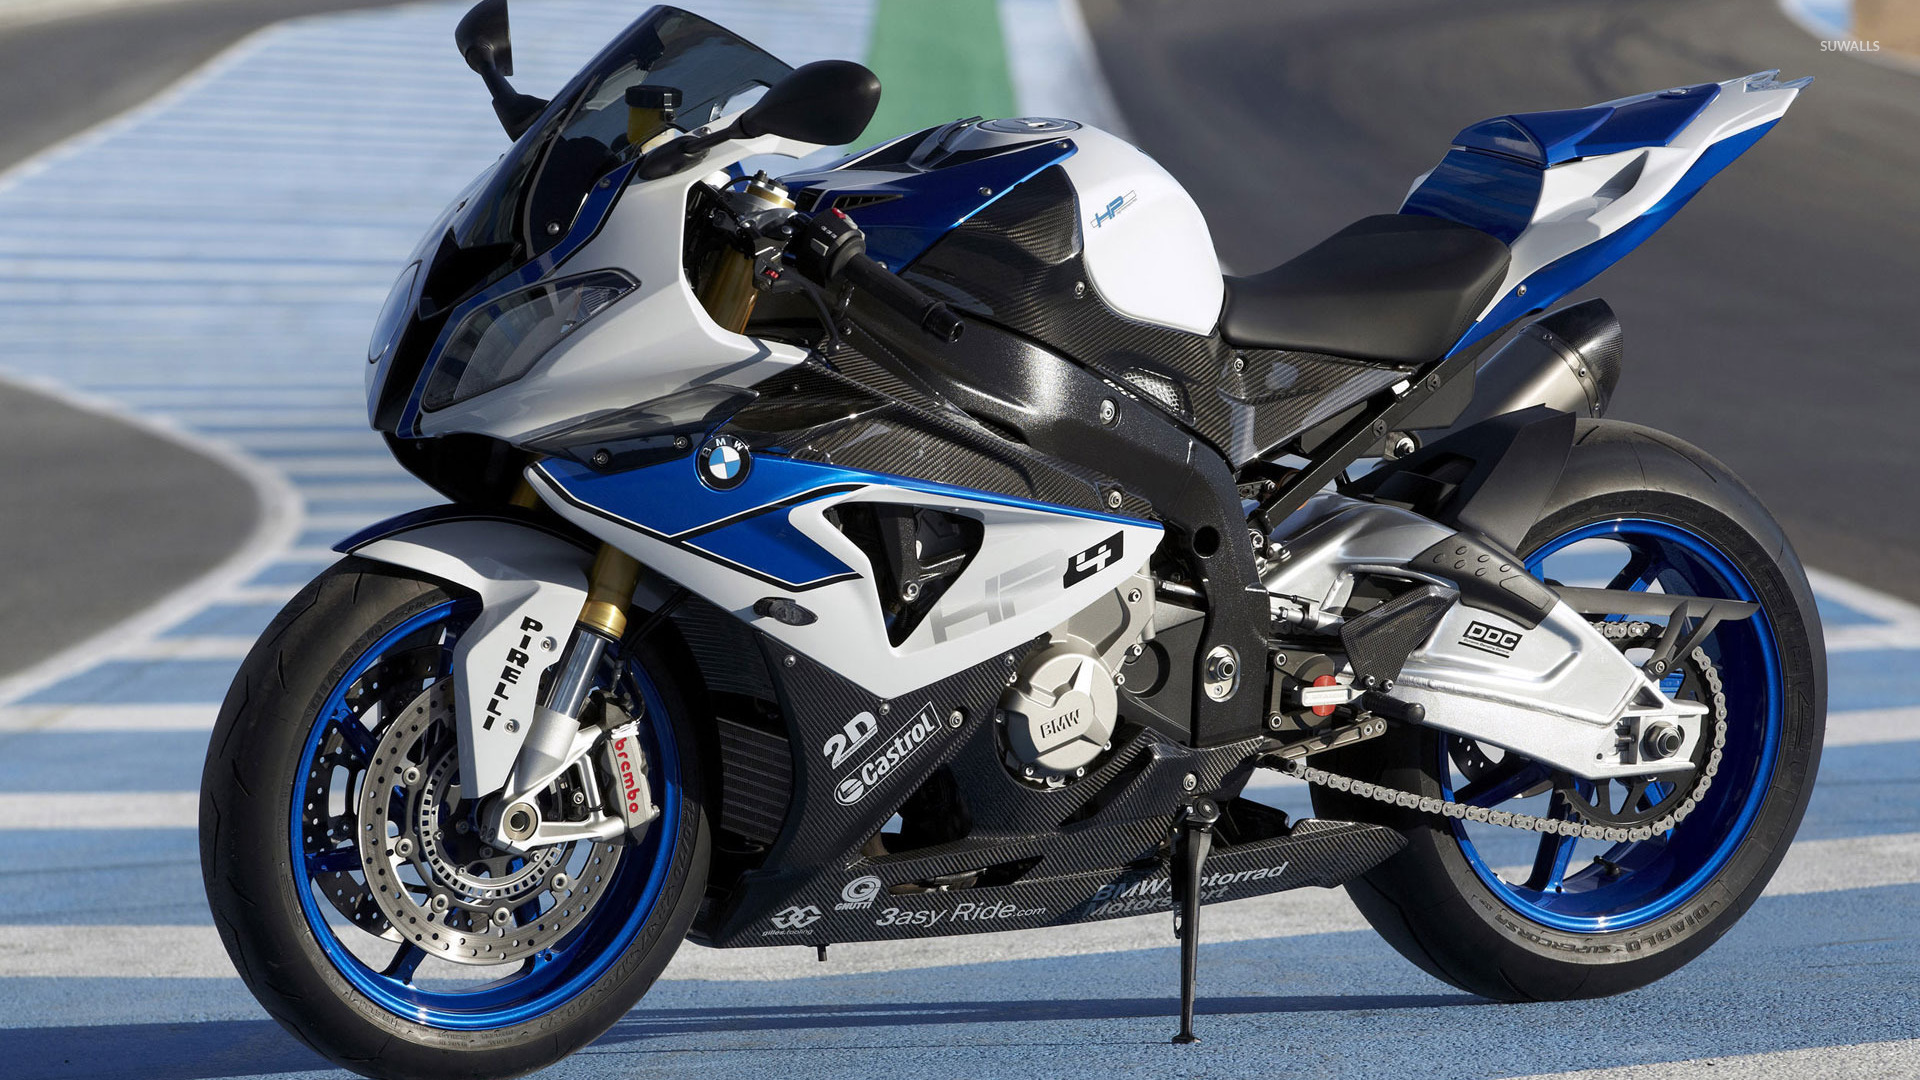 2013 Bmw S1000rr Hp4 Wallpaper Motorcycle Wallpapers 18393